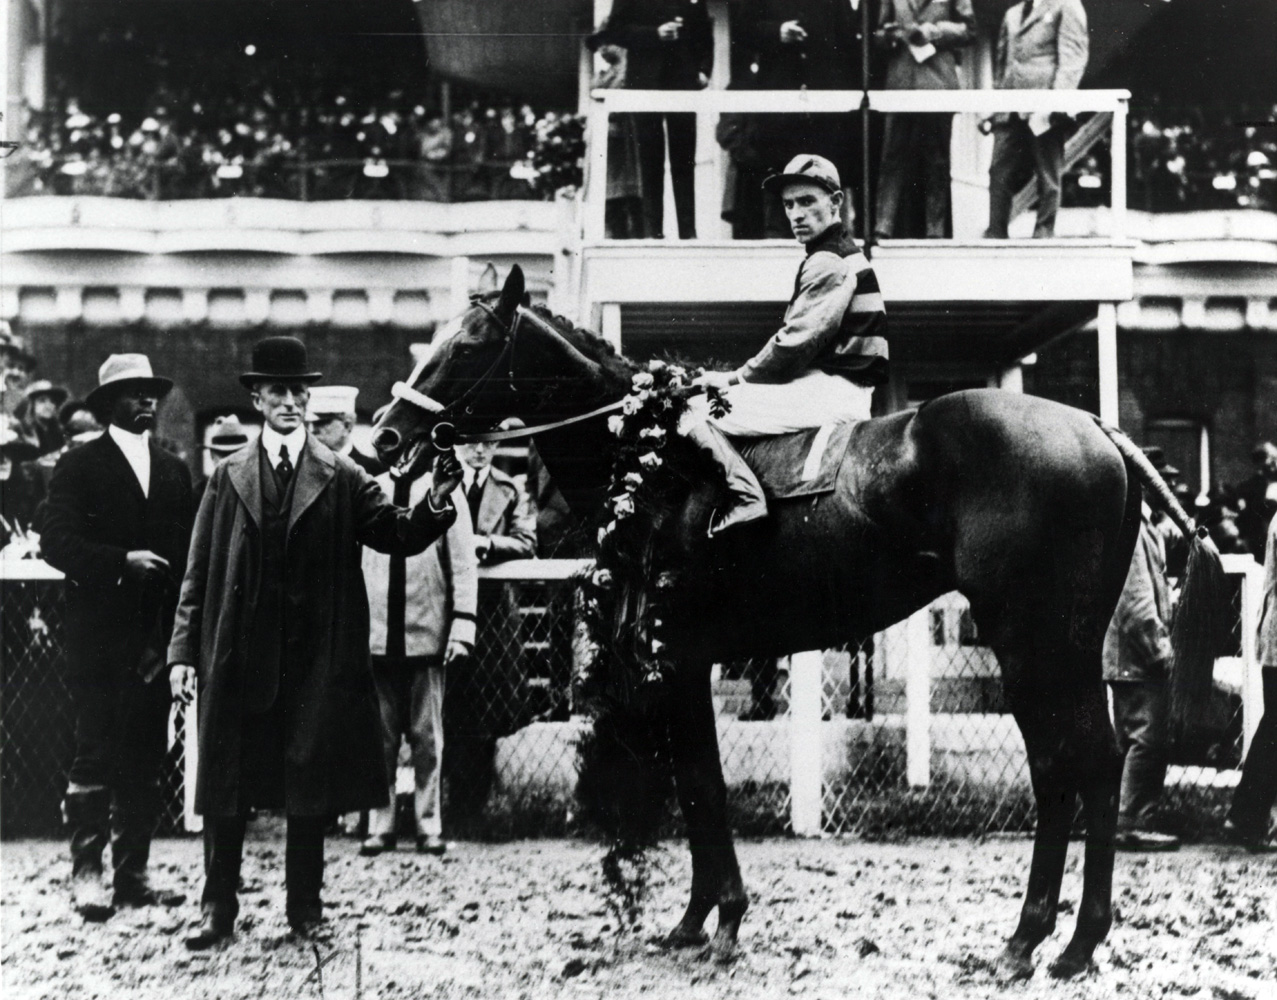 Sir Barton (John Loftus up) in the winner's circle for the 1919 Kentucky Derby (Churchill Downs Inc./Kinetic Corp. /Museum Collection)